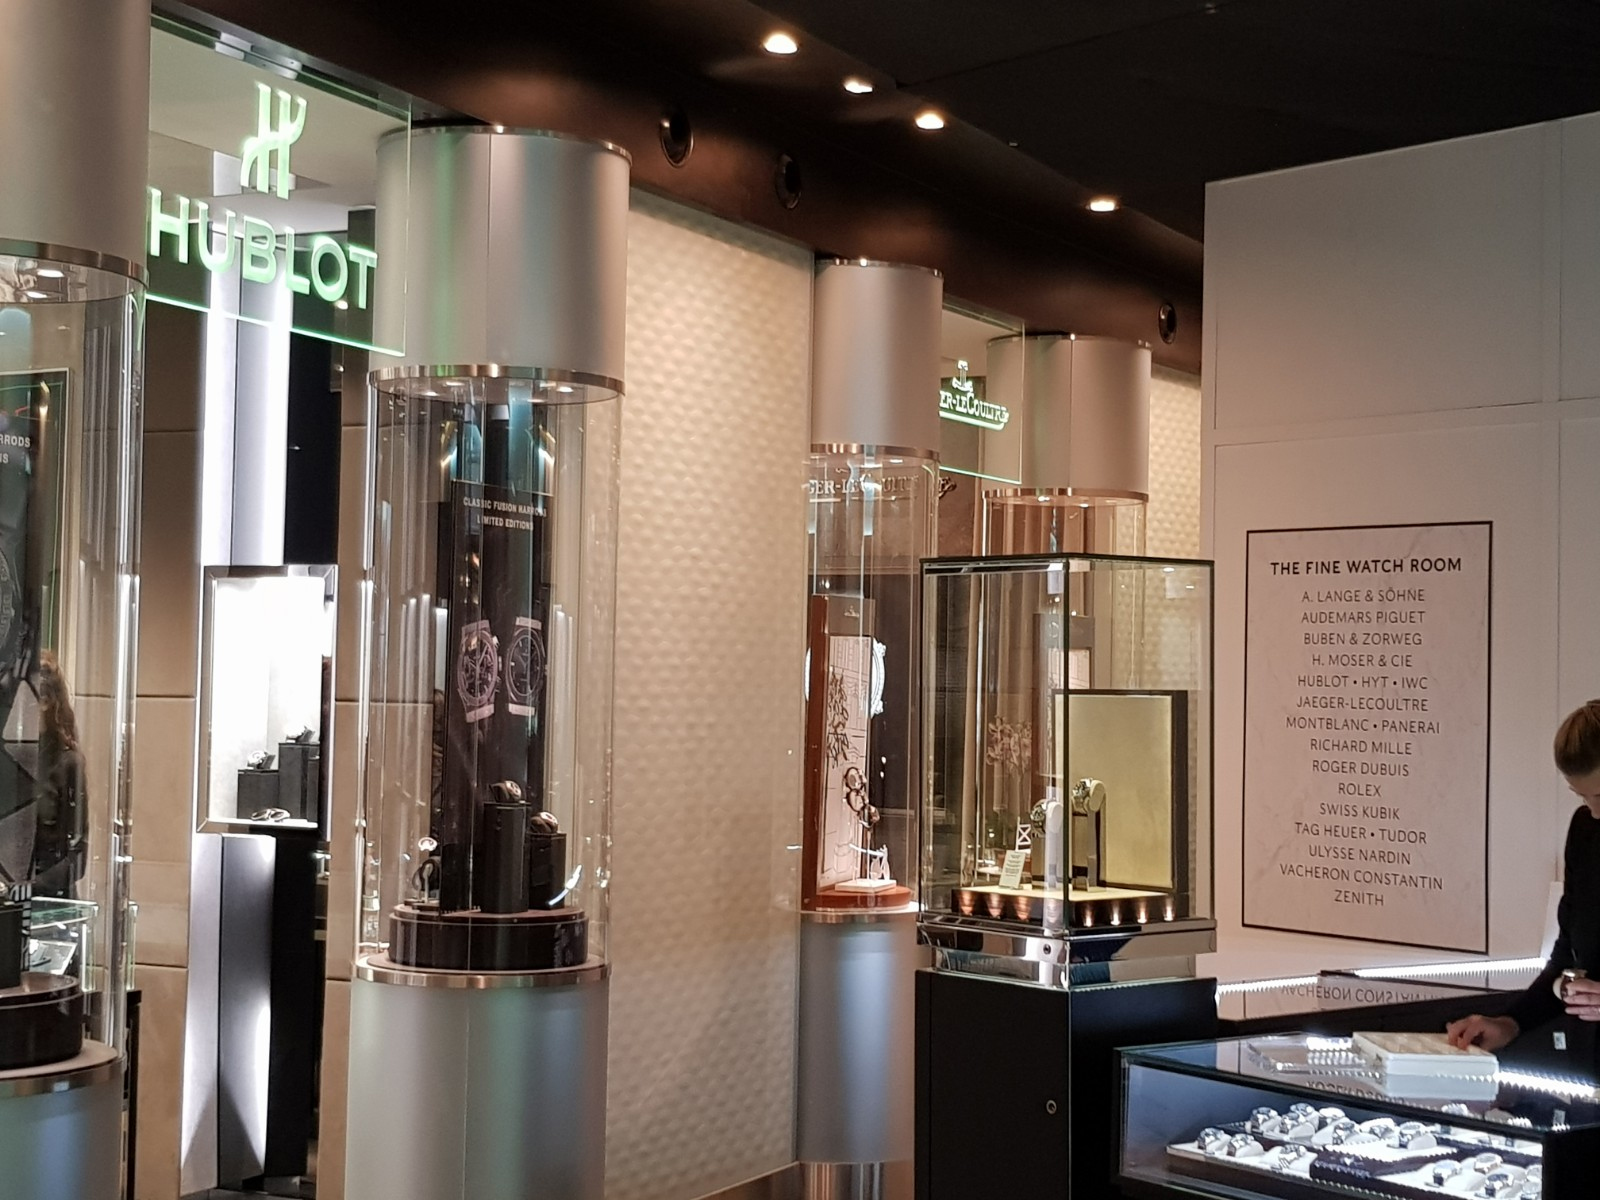 Hublot's ground floor boutique in the Harrods Fine Watch Room remains open, but is surrounded by hoardings for construction work.